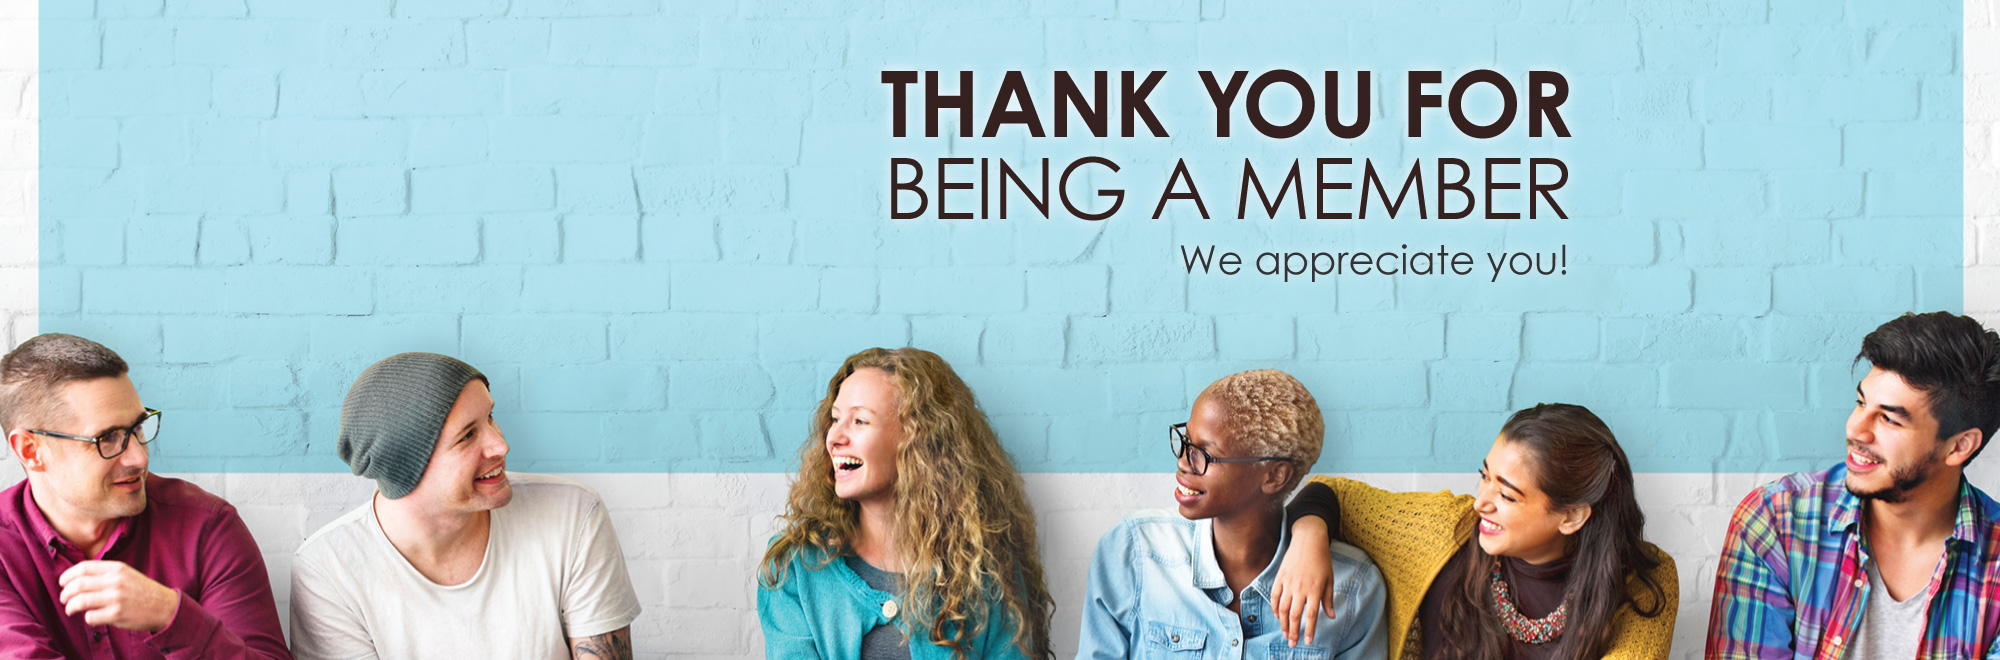 Thank you for being a member - banner image